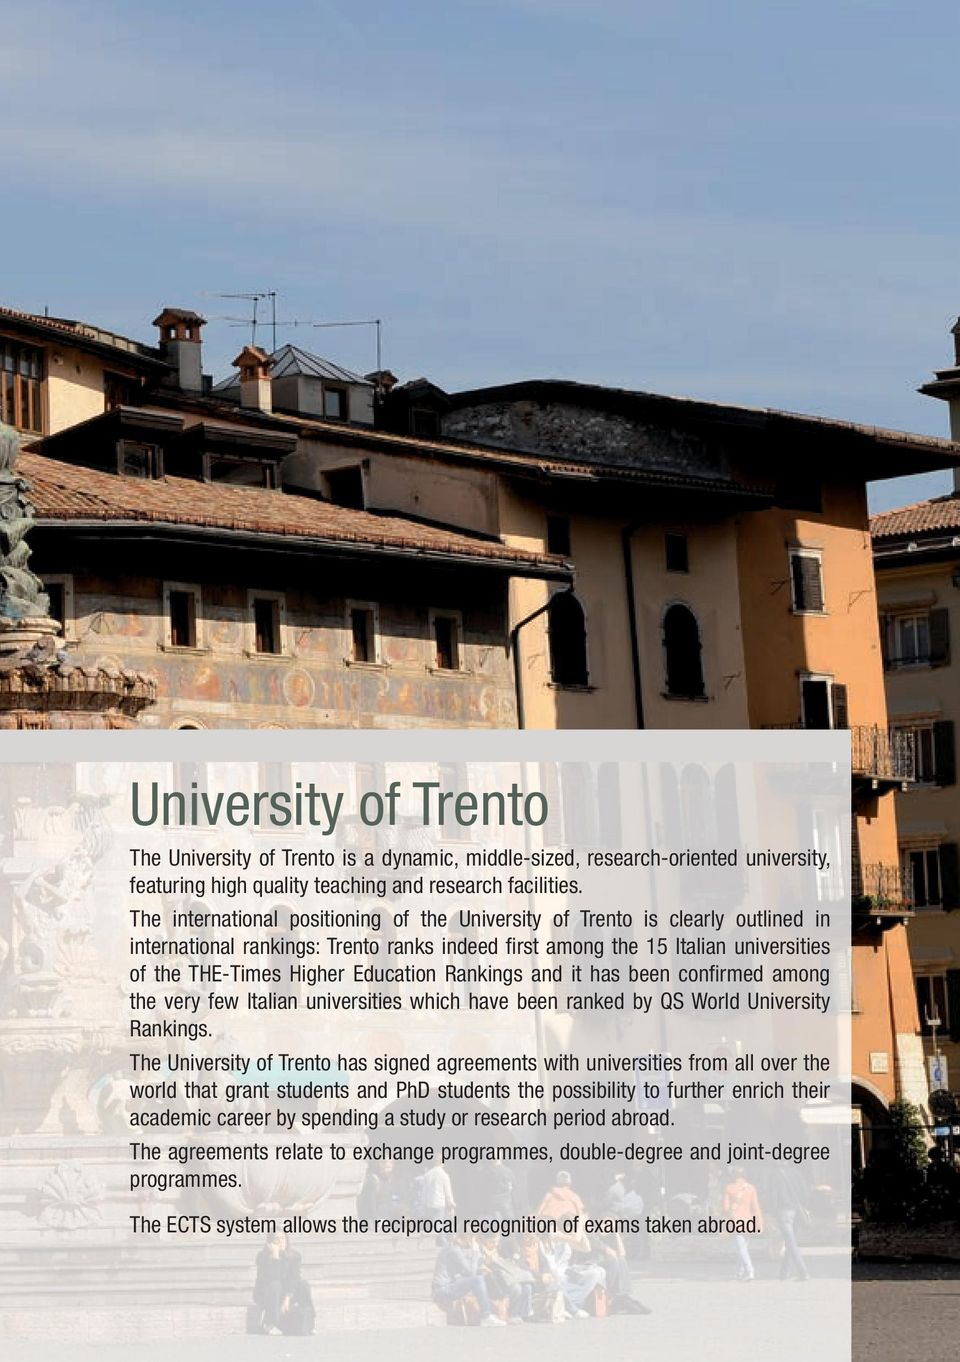 Rankings and it has been confirmed among the very few Italian universities which have been ranked by QS World University Rankings.